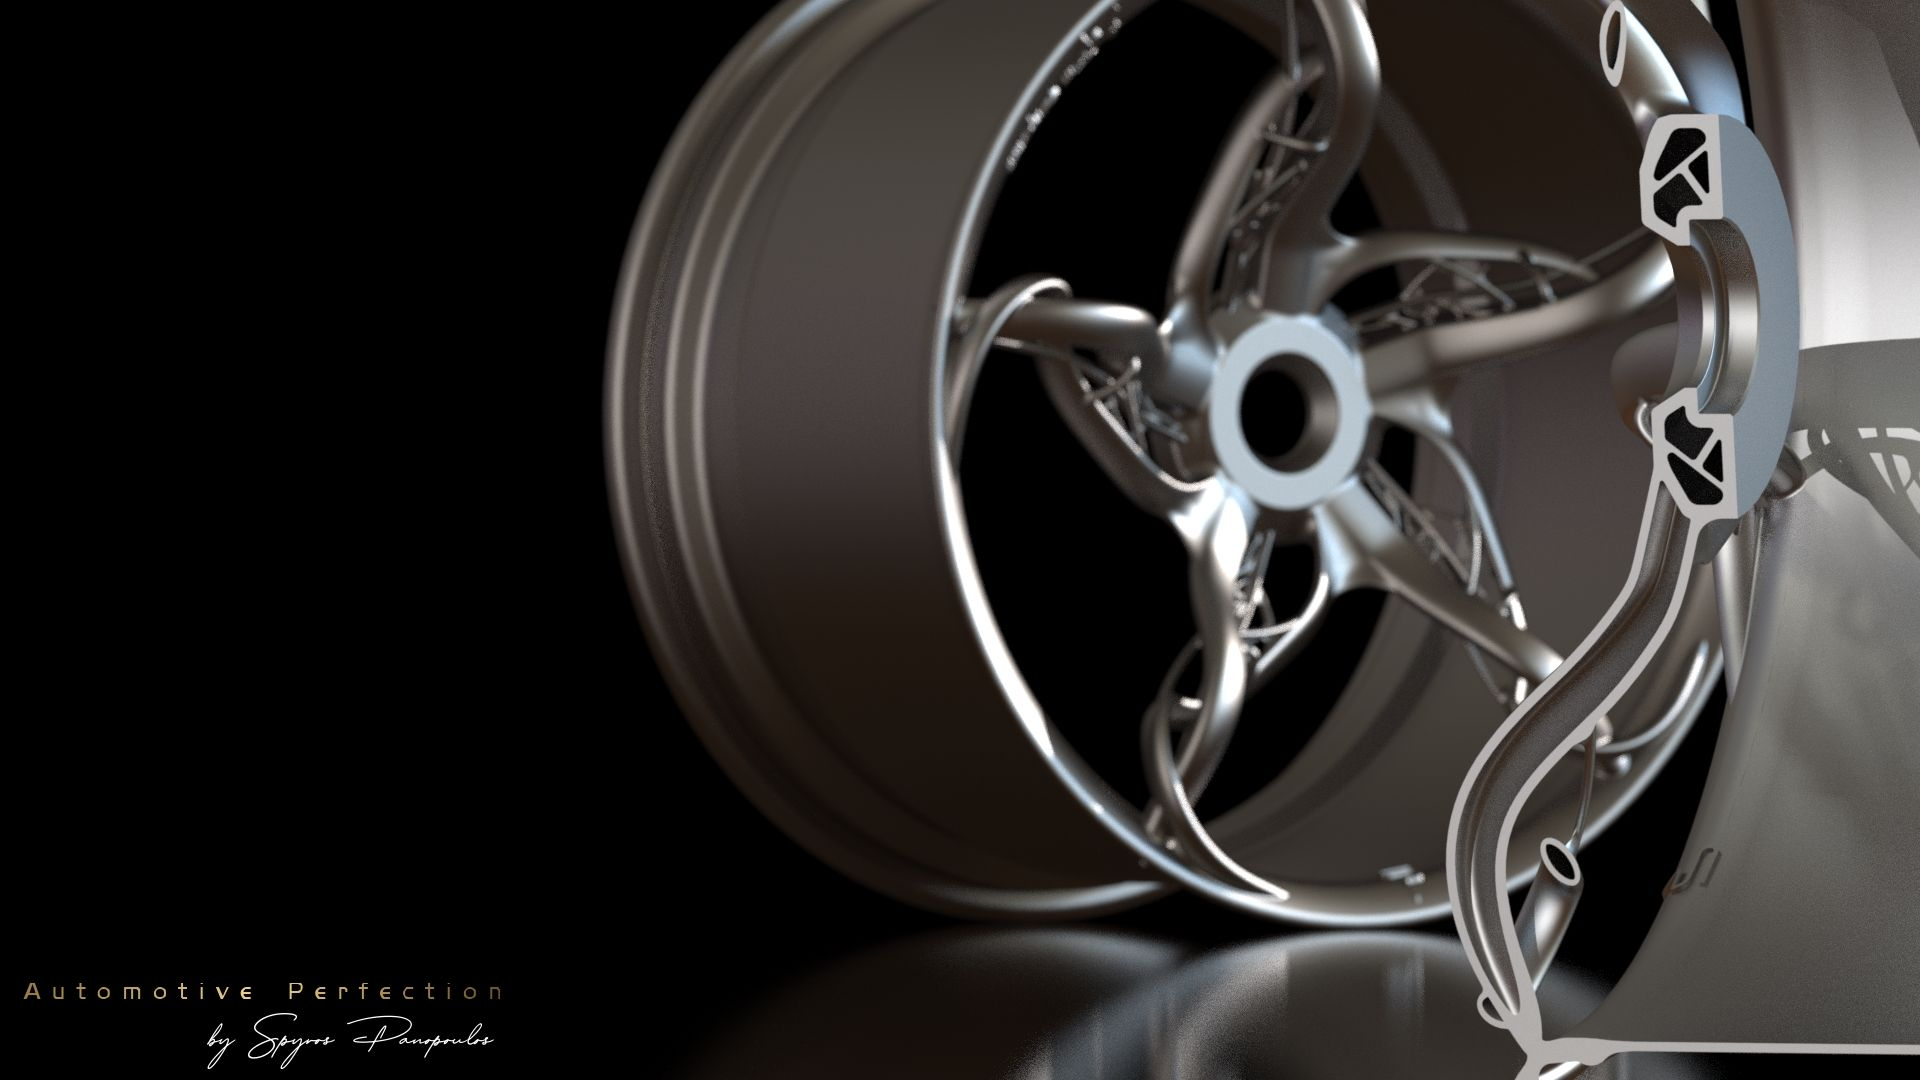 Check Out These 3d Printed Wheels On A 3 000 Horsepower Greek Ultra Car Top Speed In 2020 Car Latest Cars Horsepower